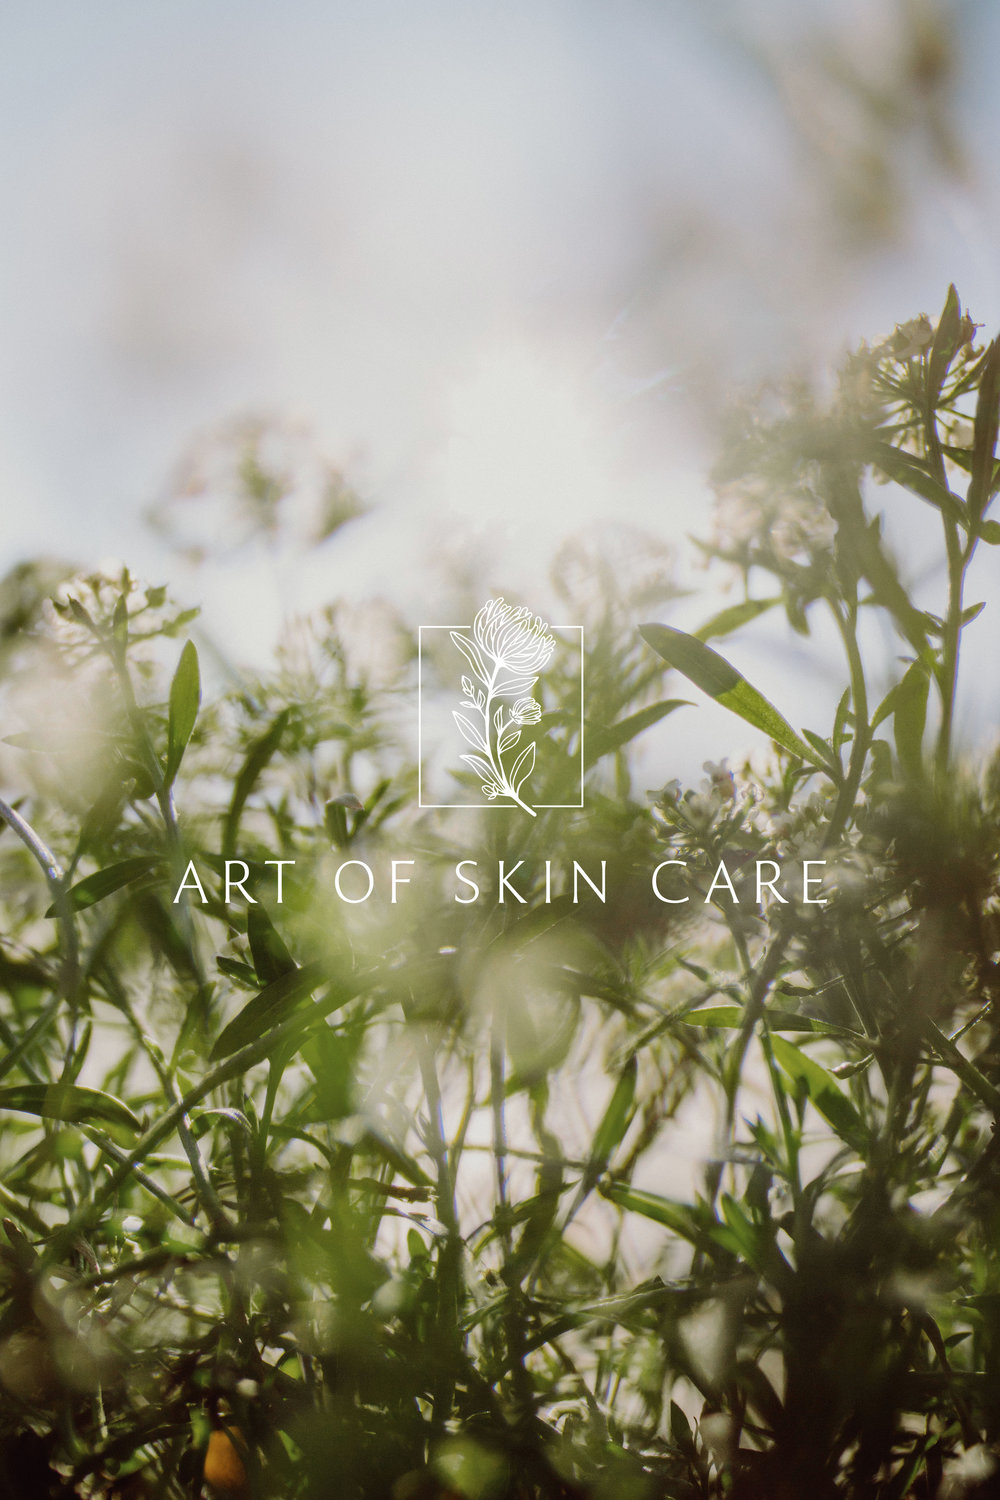 ART OF SKIN CARE (COMING SOON!)